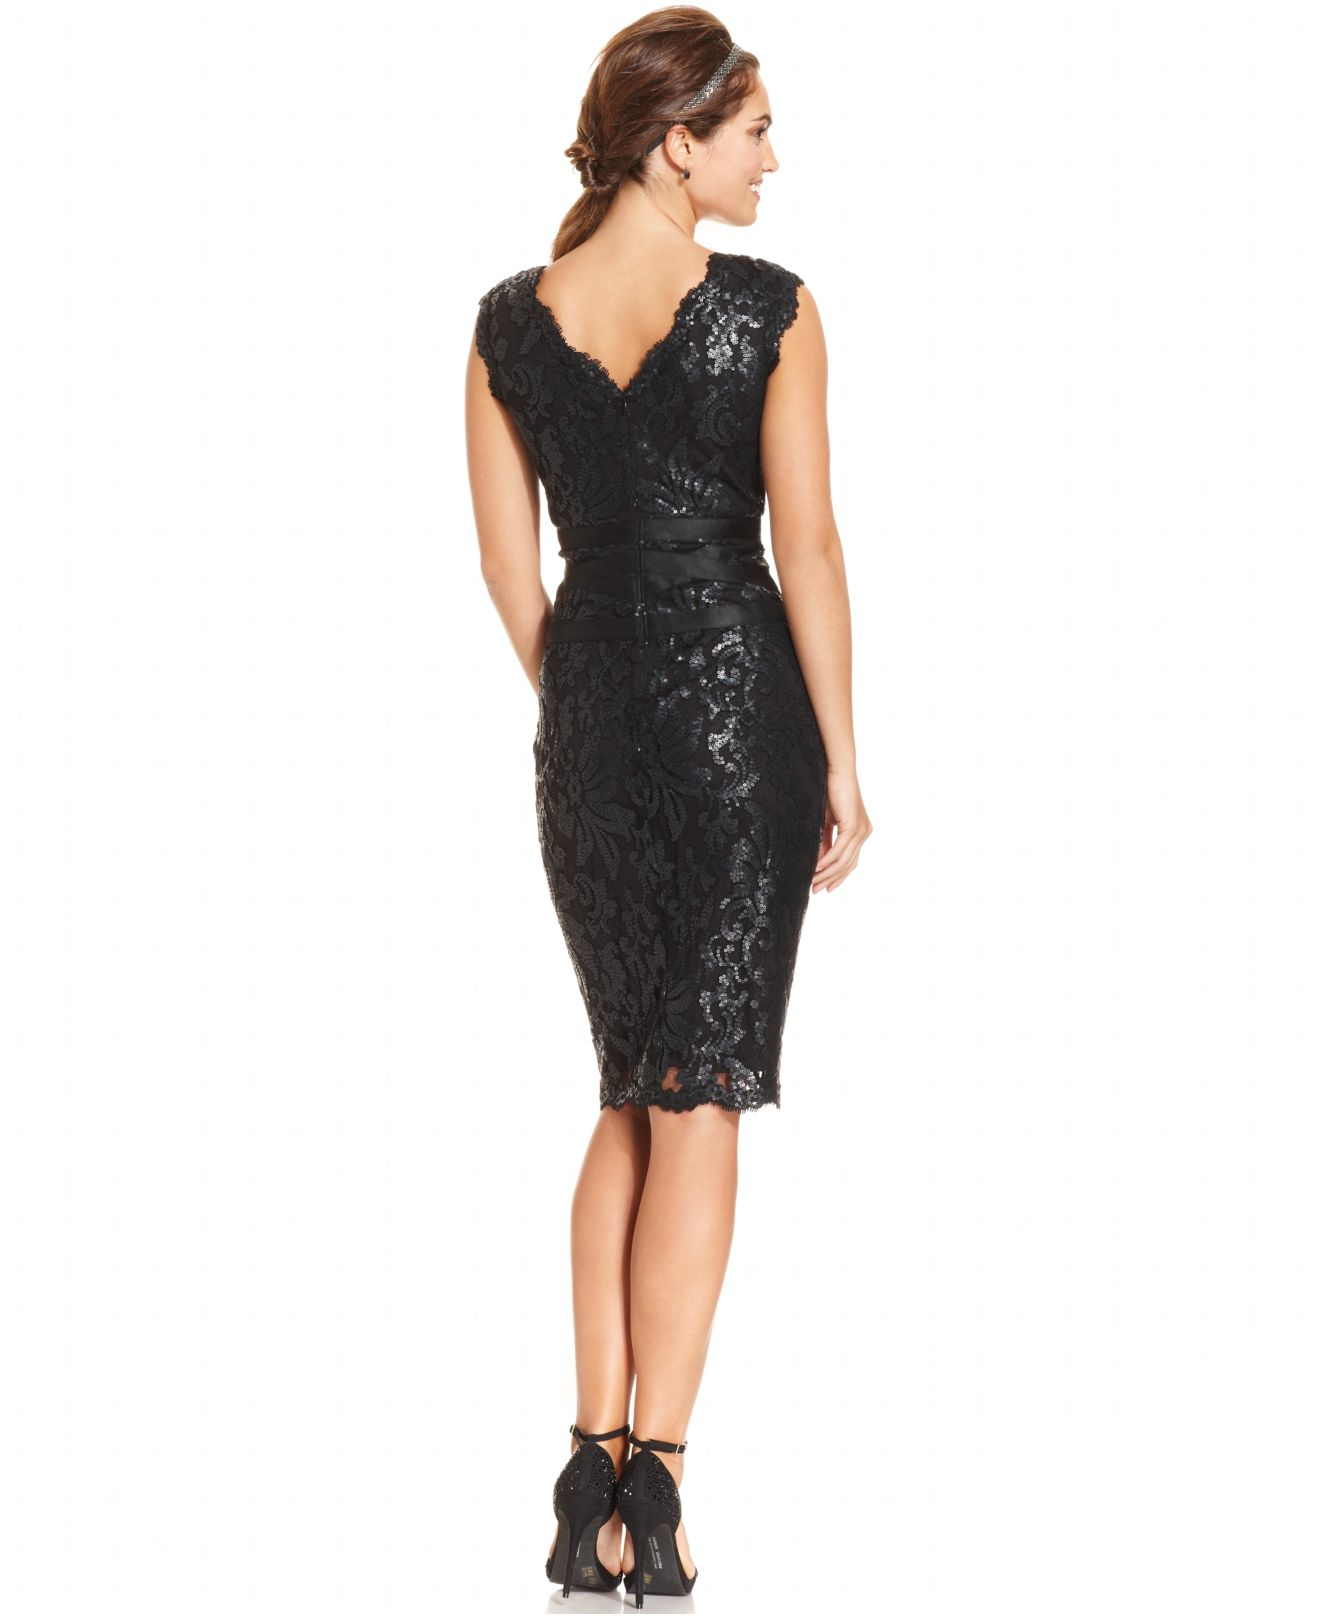 Lyst - Adrianna Papell Sleeveless Sequin-Lace Sheath in Black